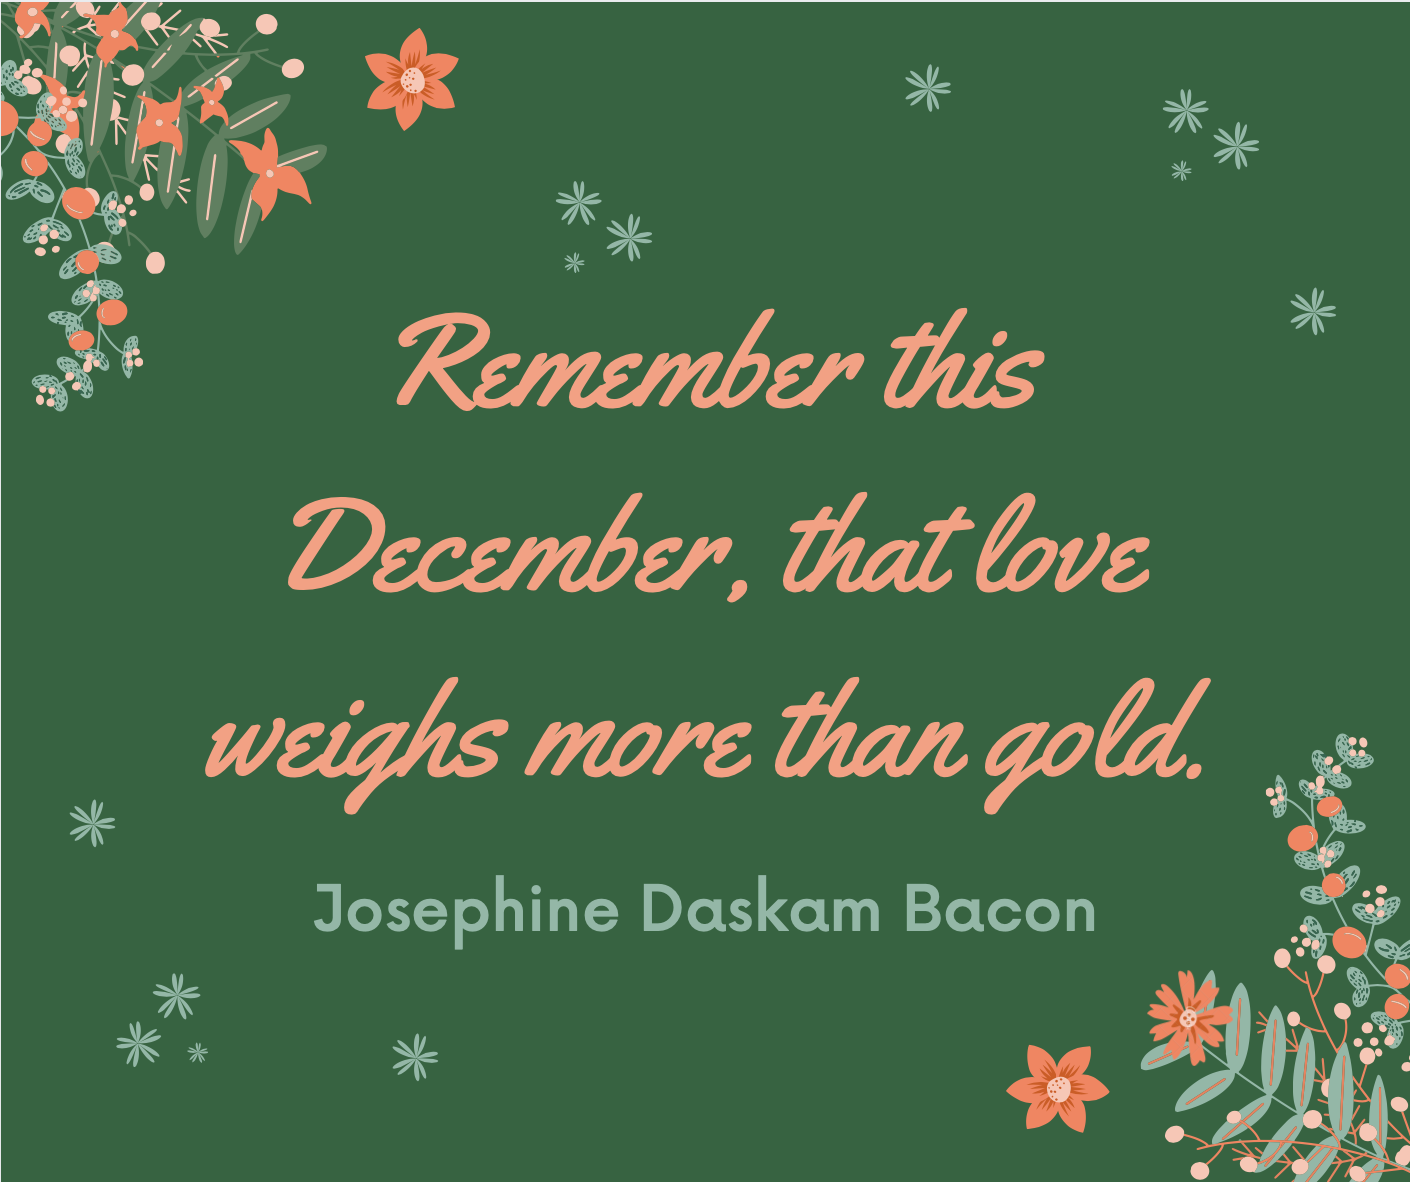 Remember this December, that love weighs more than gold.